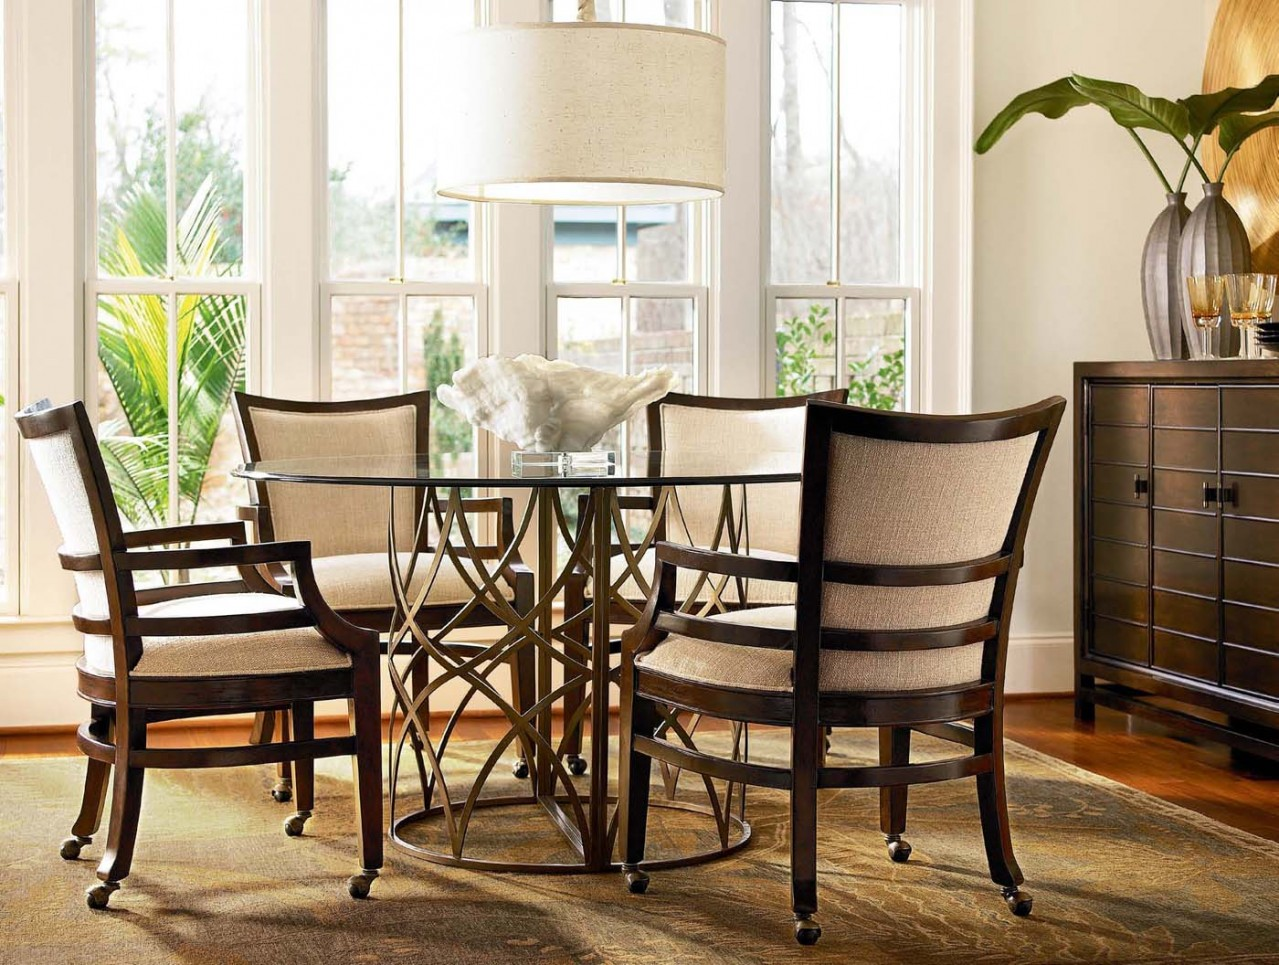 Image of: Rustic Dining Room Chairs With Casters